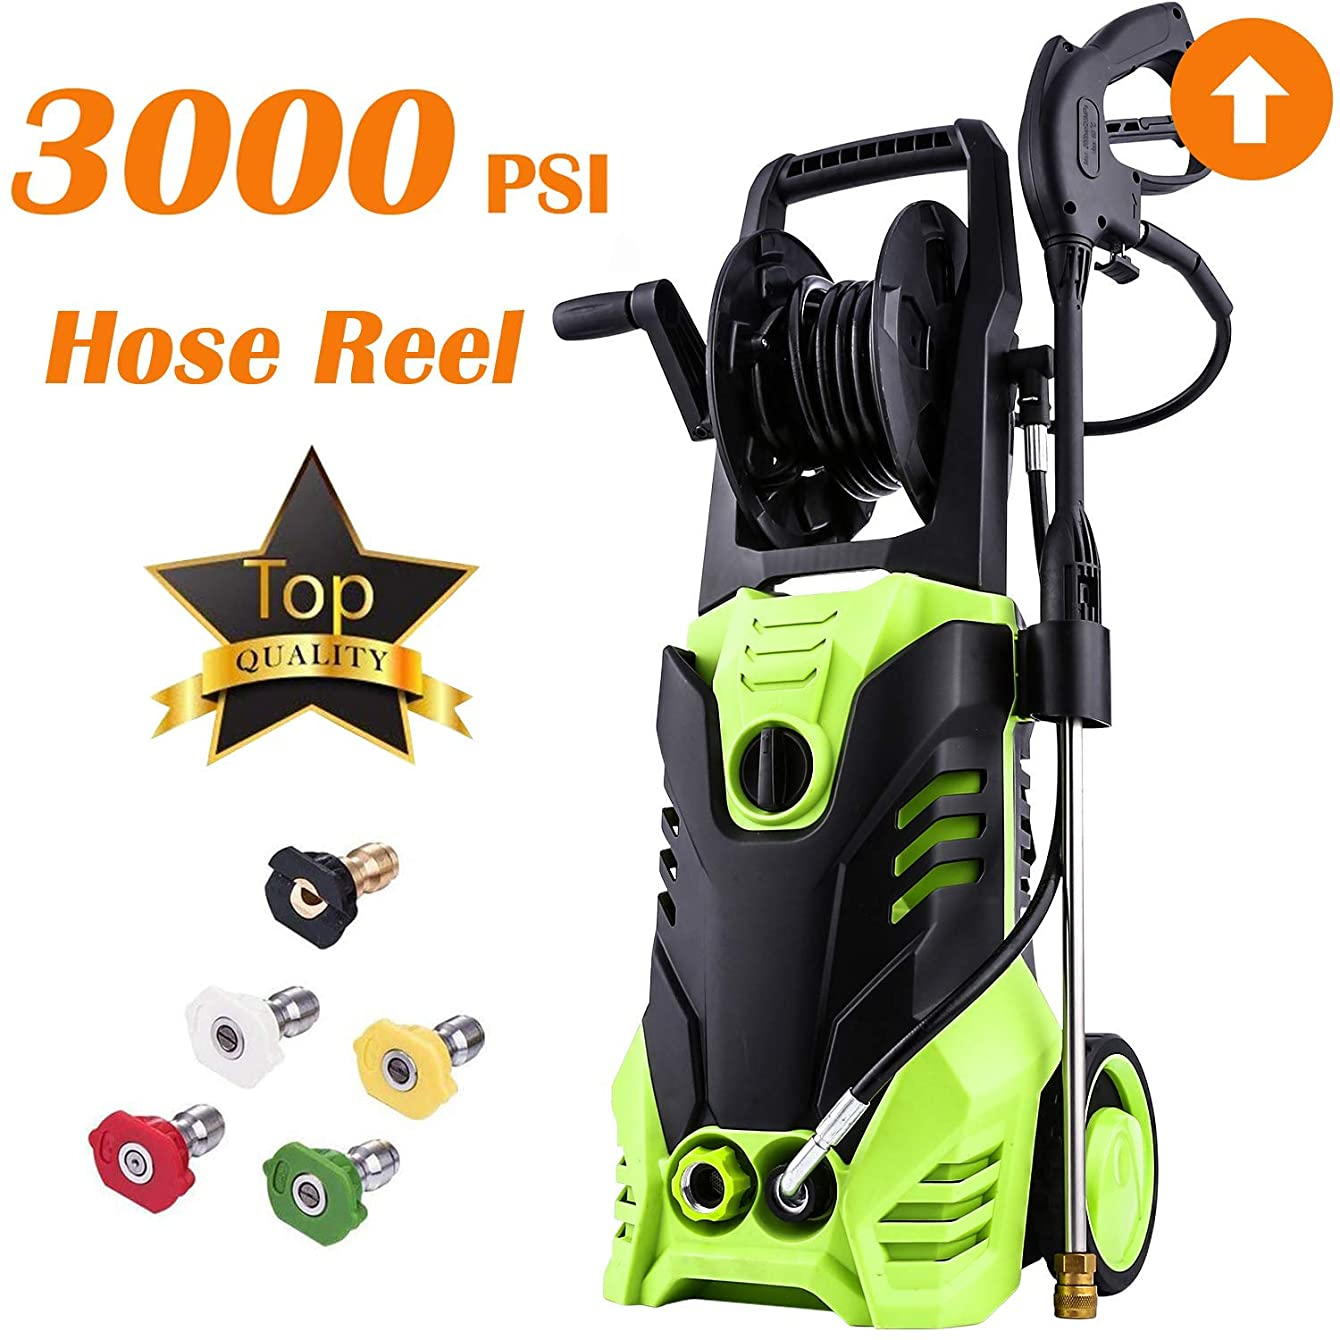 Homdox Electric High Pressure Washer 3000PSI, 1.8GPM Power Pressure Washer Machine with Power Hose Gun Turbo Wand 5 Interchangeable Nozzles (Light Green)